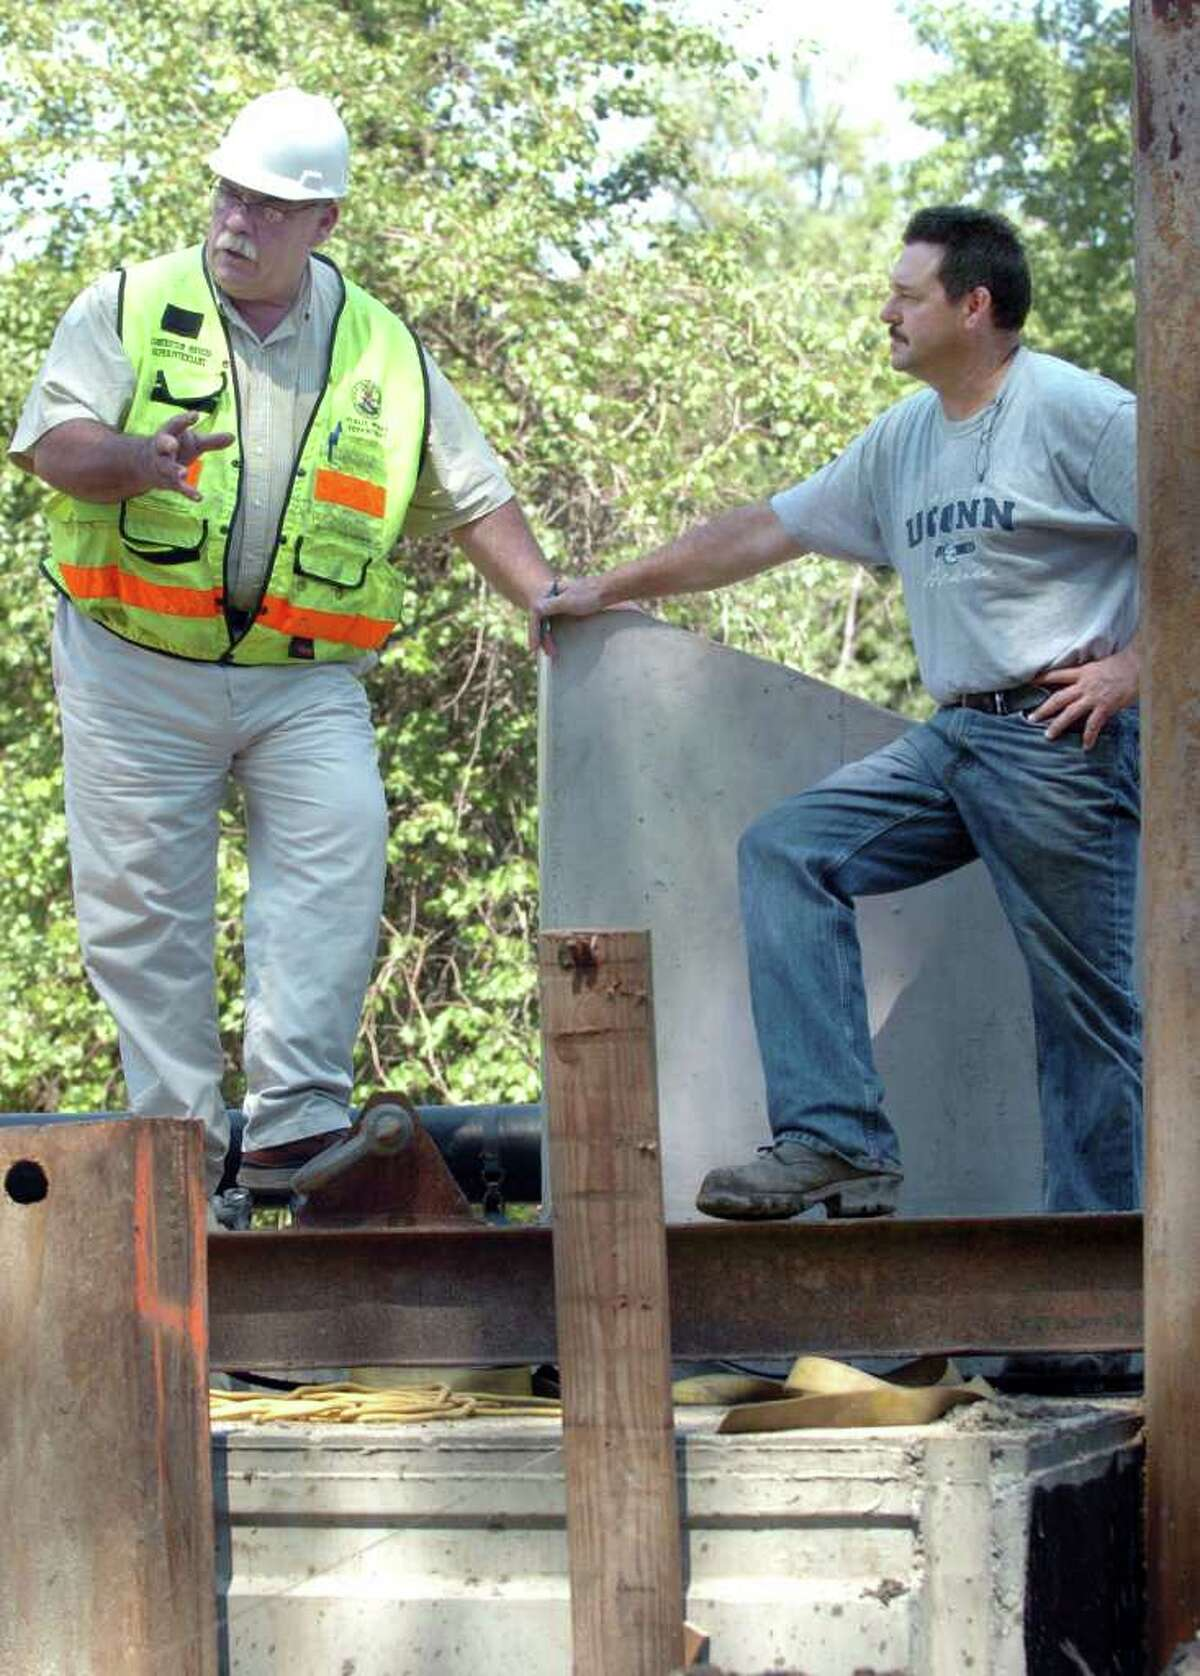 Tom Hughes, left, superintendent of construction services for the city, talks with Robert Brady, general supervisor for Hemlock Construction, the contractor for the Backus Avenue bridge project. Photo taken Thursday, August 19, 2010.